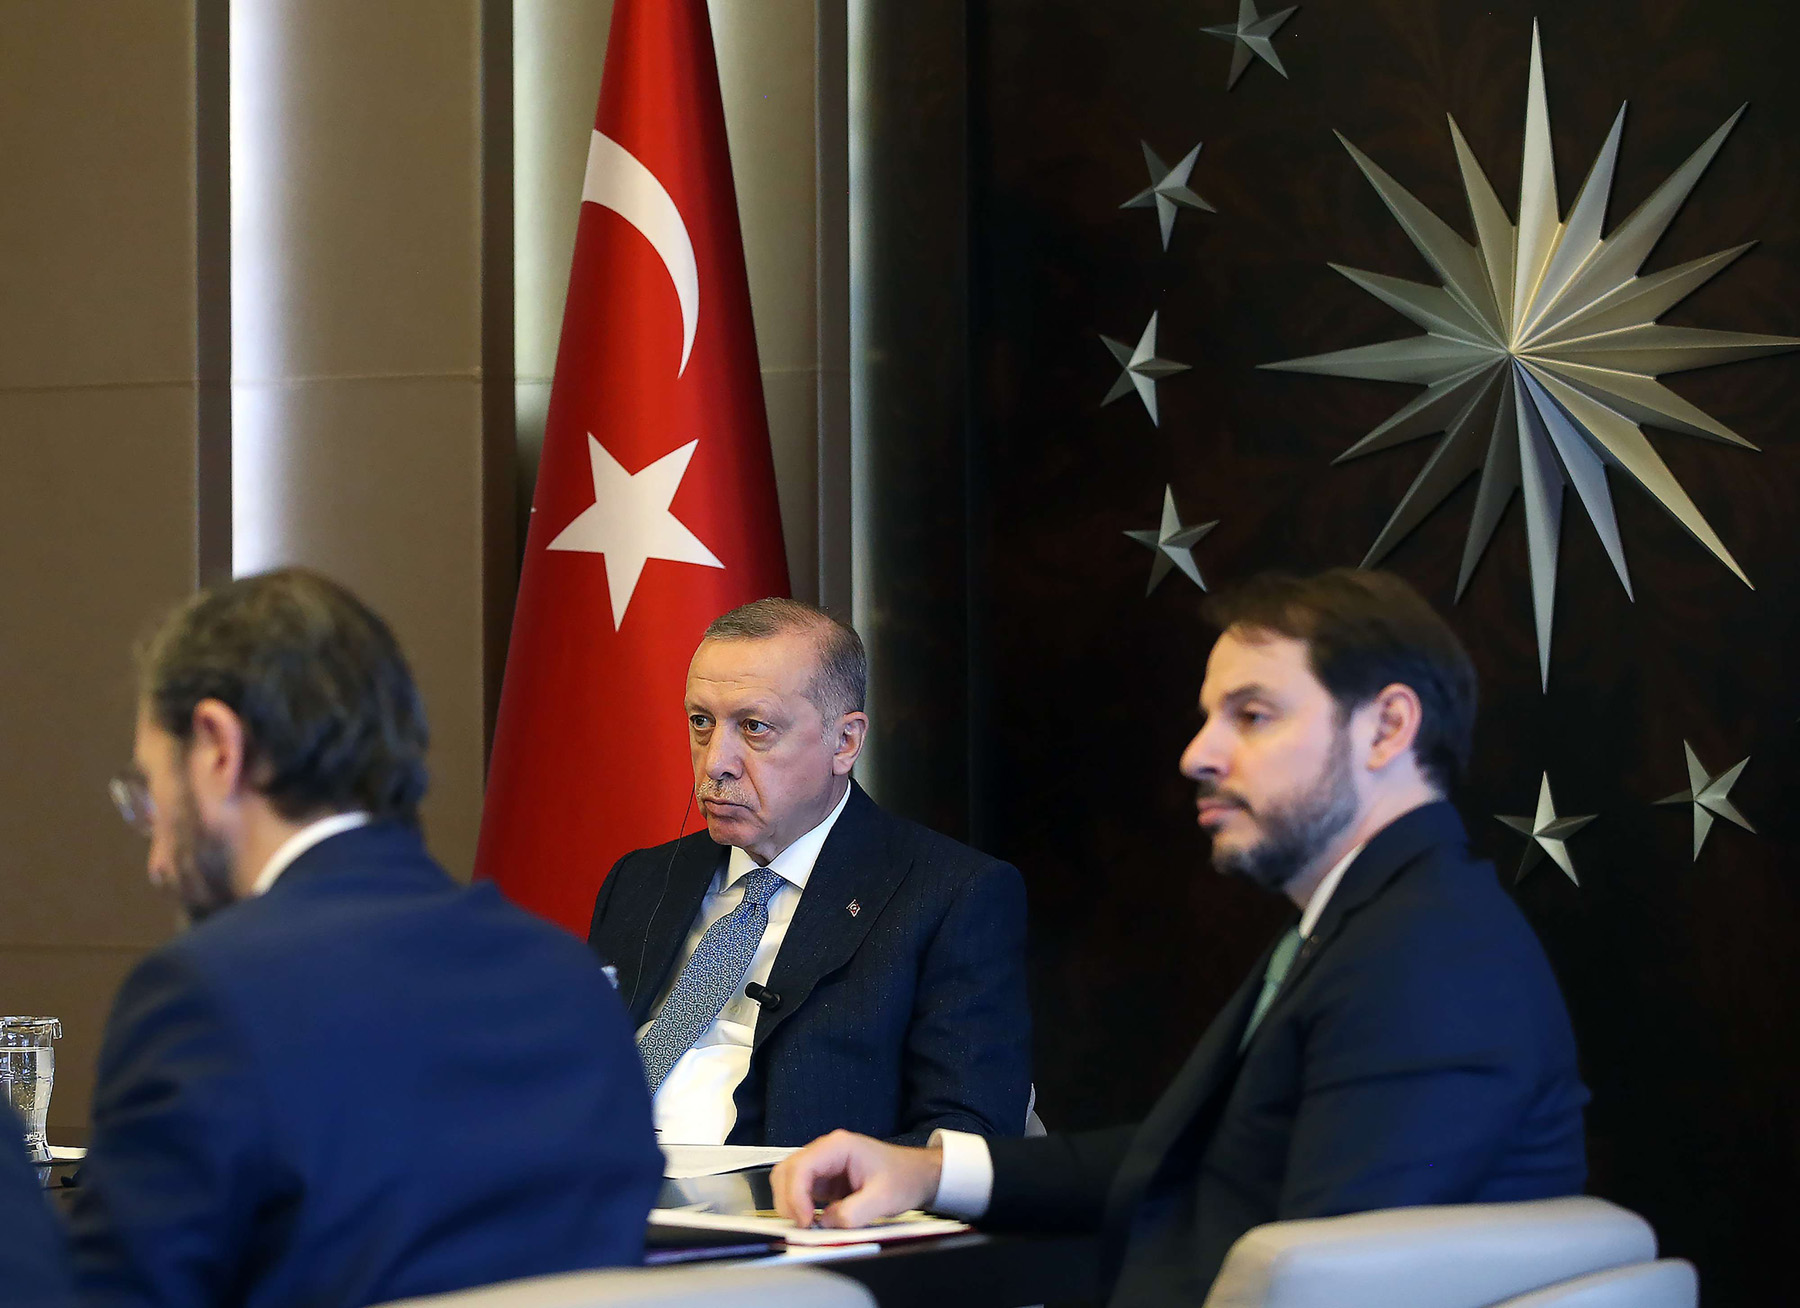 Fuelling concern. A file picture shows Turkish President Recep Tayyip Erdogan (R) taking part via a video conference in Extraordinary Virtual G20 Leaders' Summit in Istanbul, last March. (AFP)